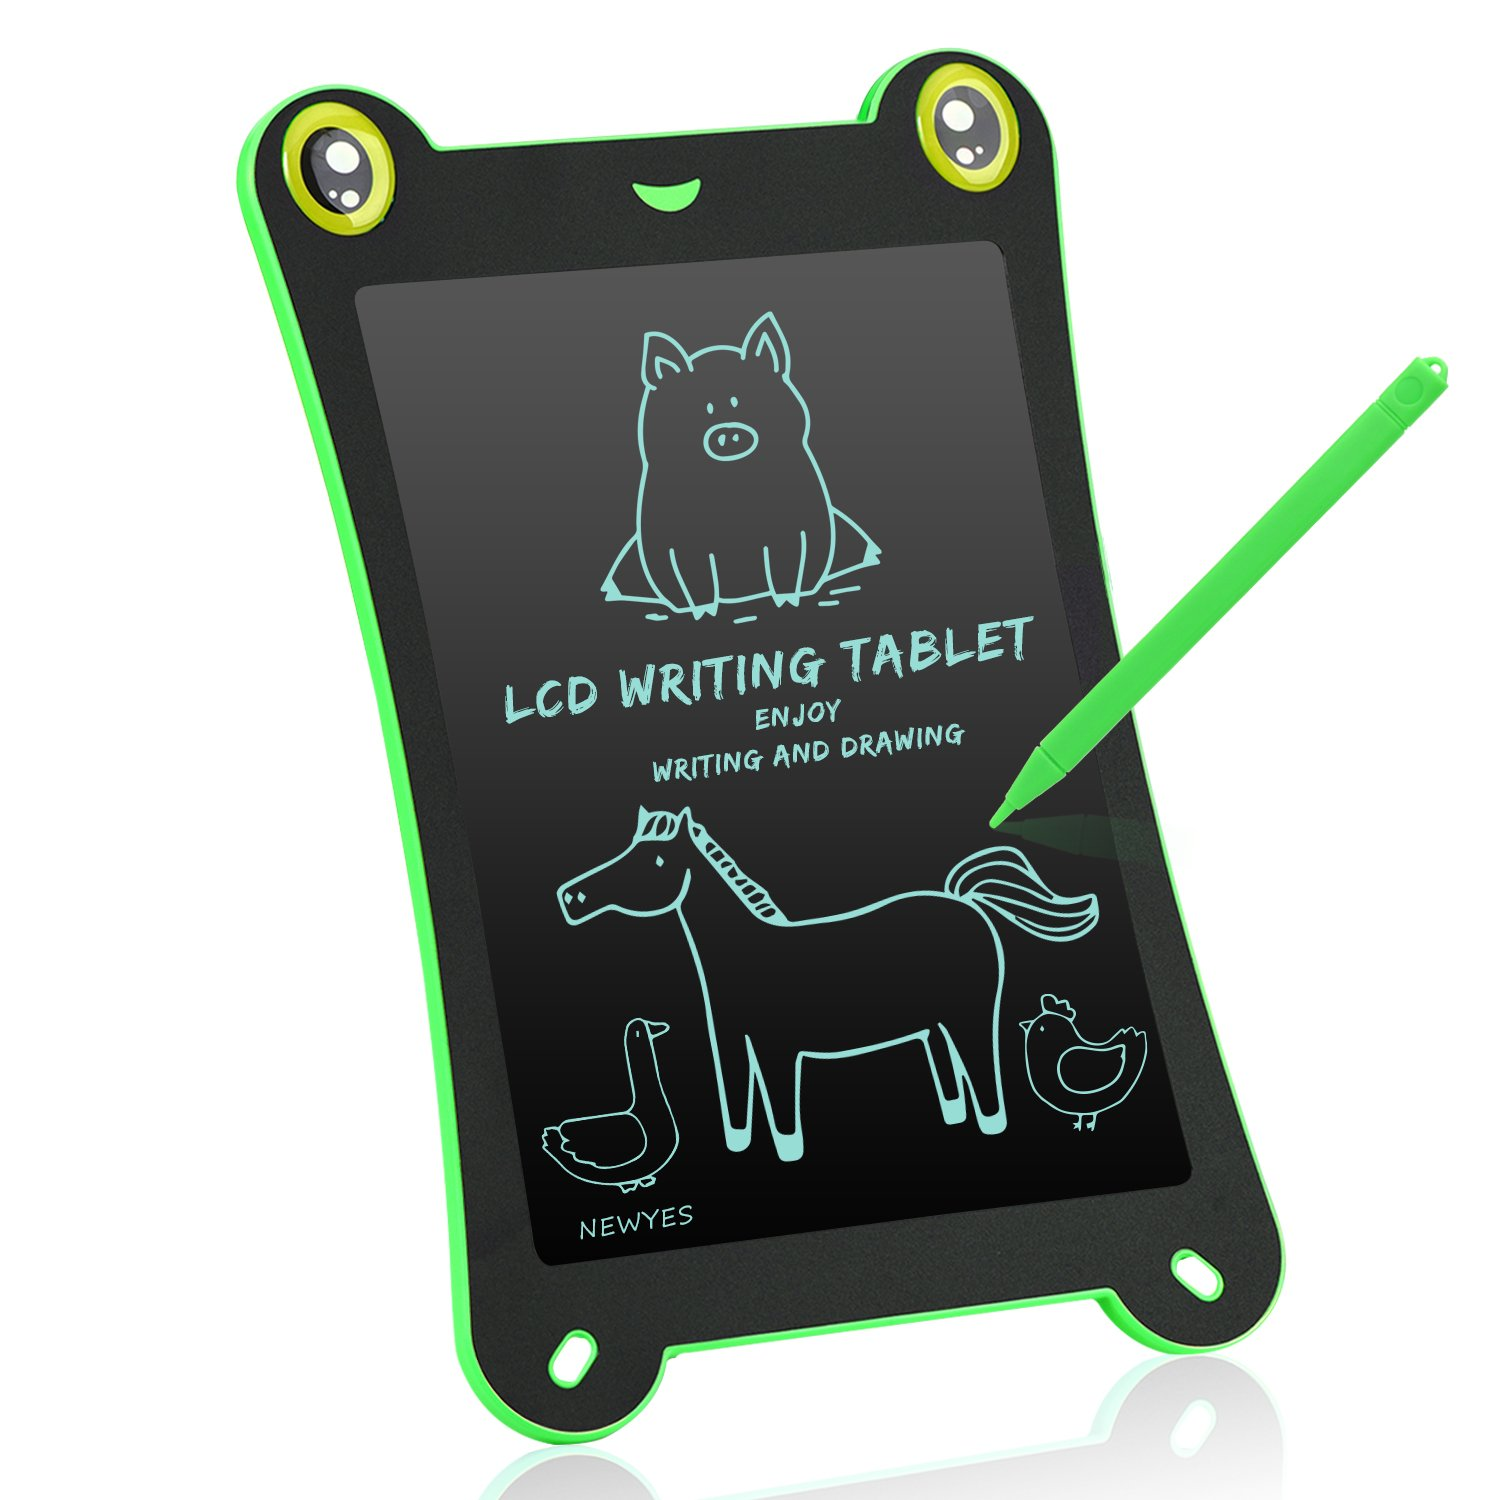 NEWYES Children's Cute Board LCD Writing Tablet NYF850 8.5 Inch Frog Handwriting Tablet Graphic Drawing Board Digital Portable Magnetic Durable Touch Pad Boards for kids 1 Year Warranty (green-frog)